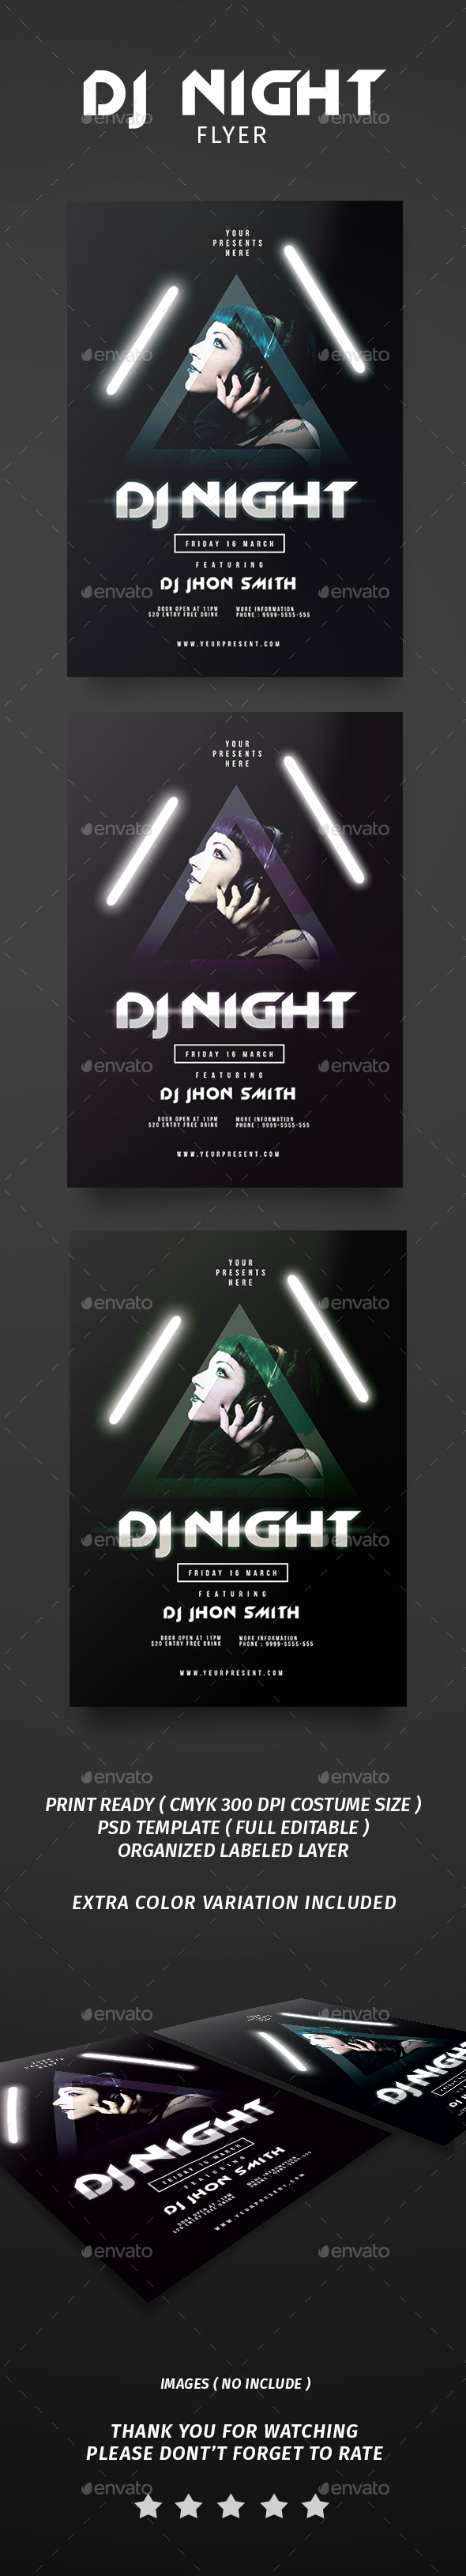 Dj Night Flyer - Flyers Print Templates